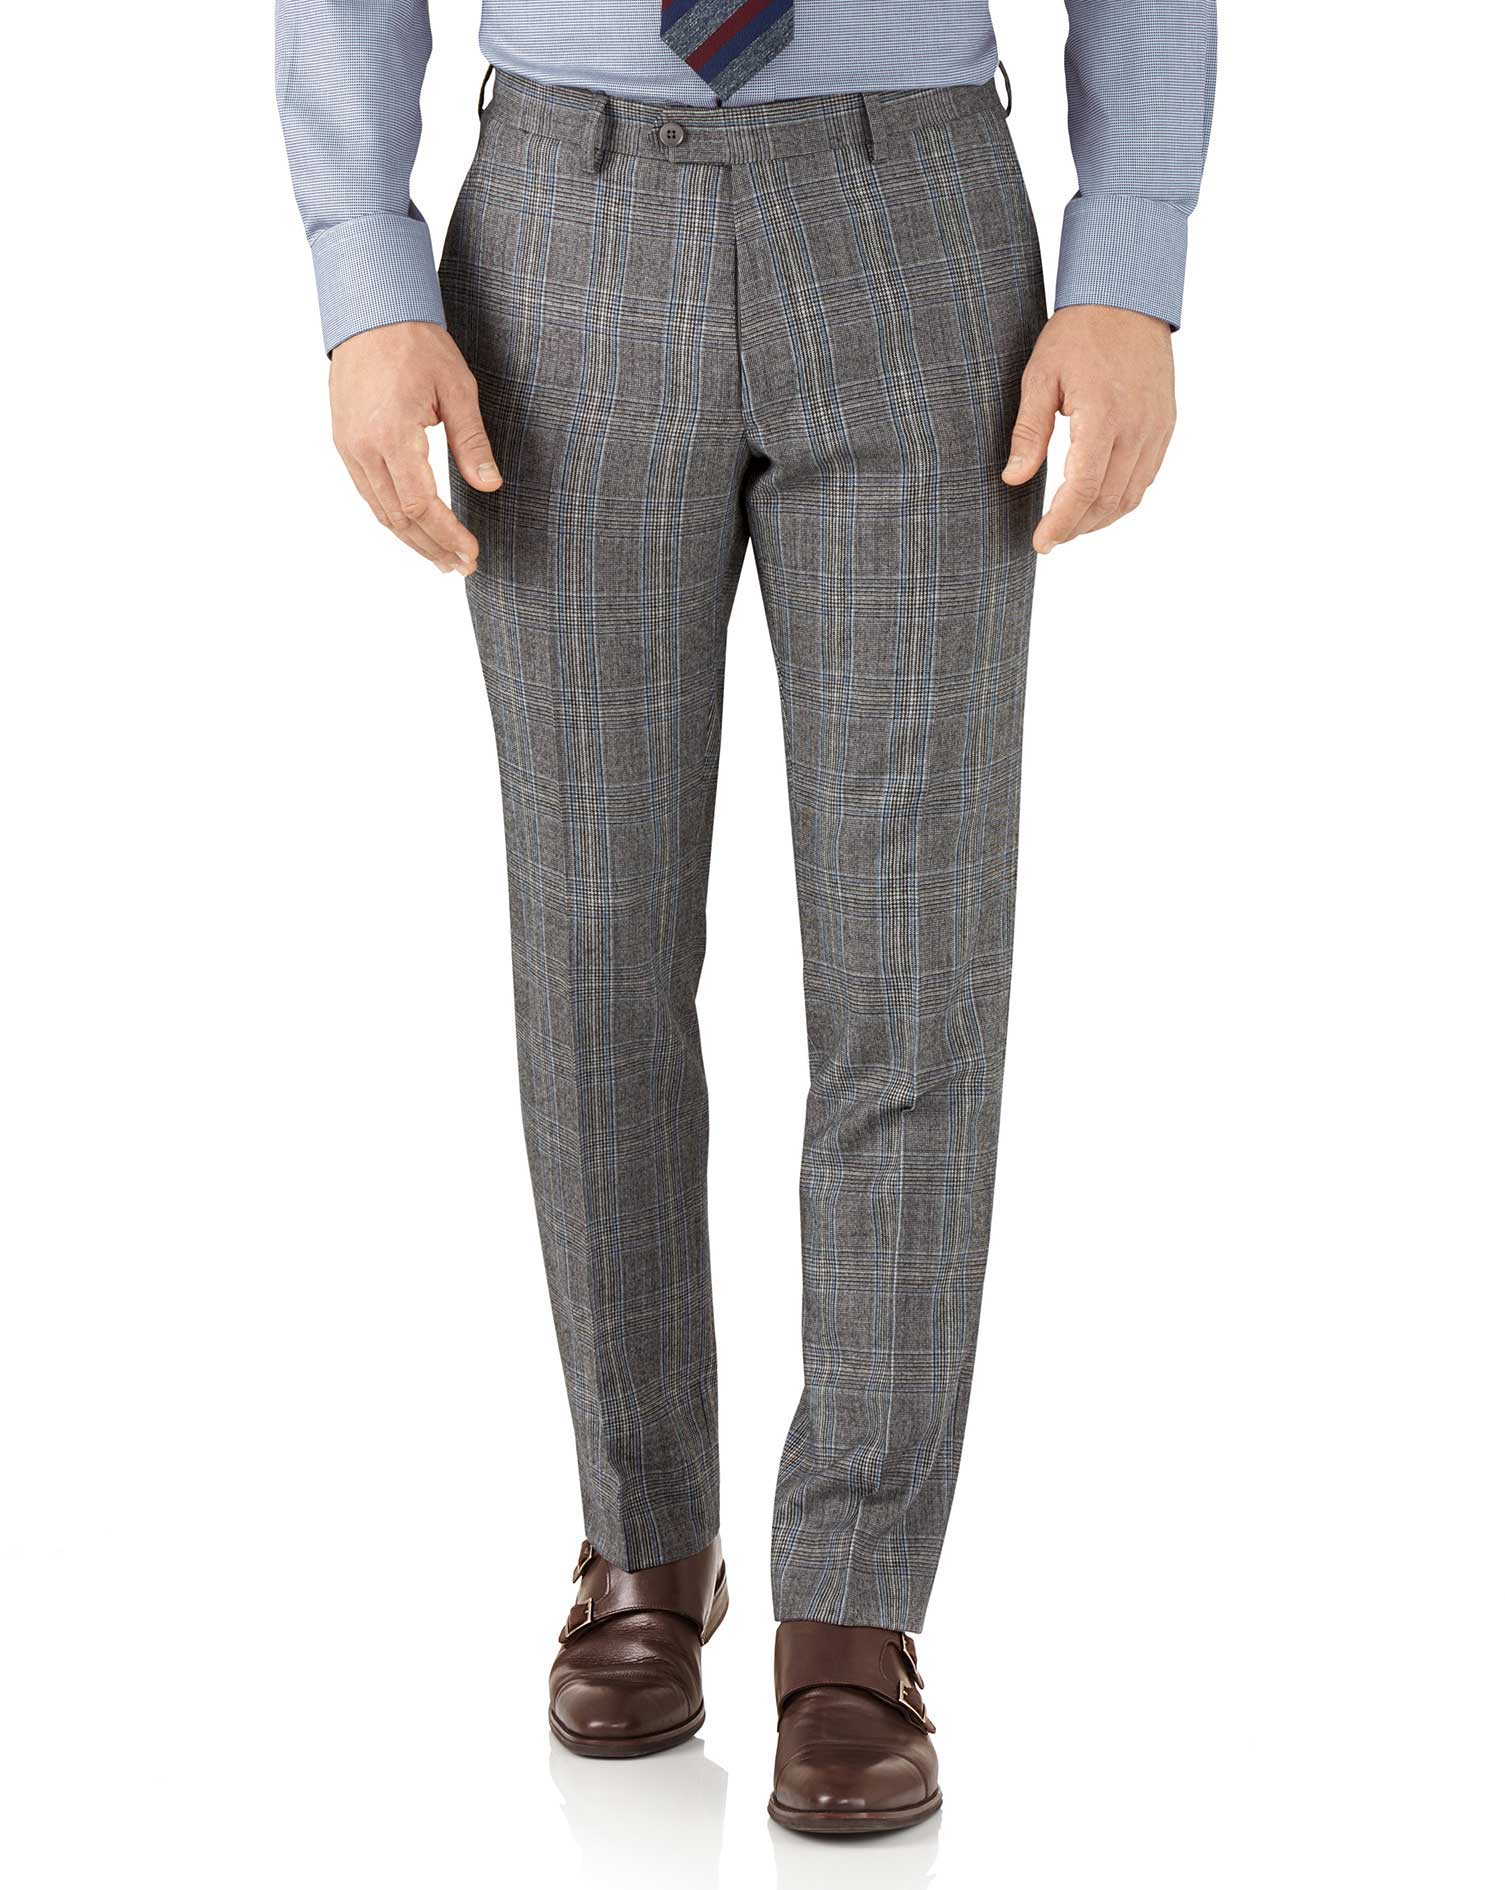 Silver Prince Of Wales Slim Fit Flannel Business Suit Trousers Size W34 L34 by Charles Tyrwhitt